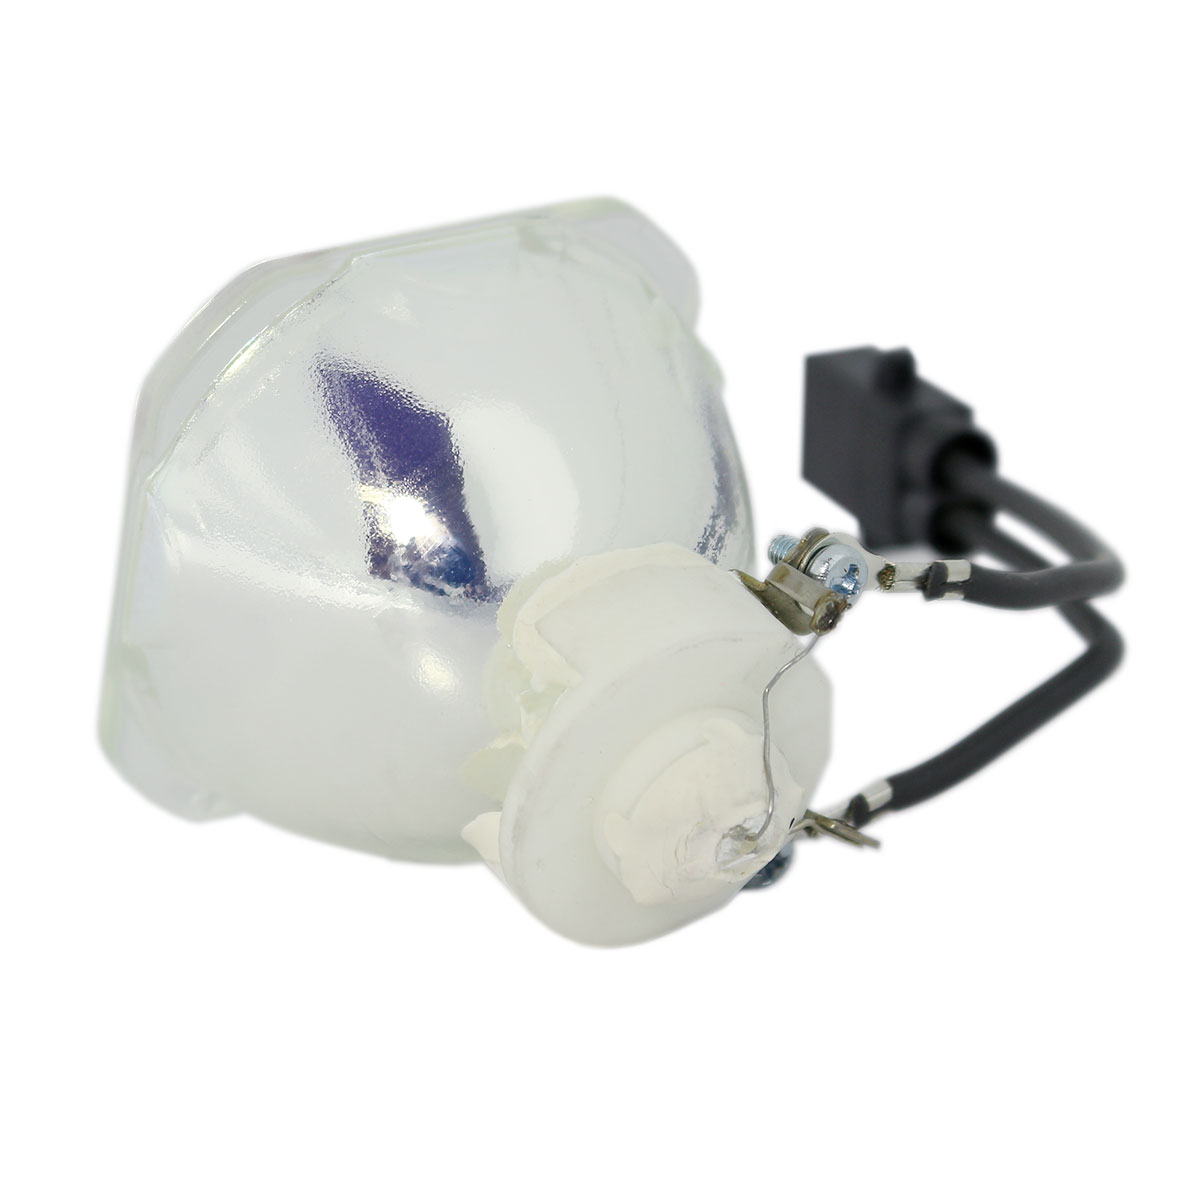 Lutema Economy Bulb for Epson EB-685Wi Projector (Lamp Only) - image 1 de 5